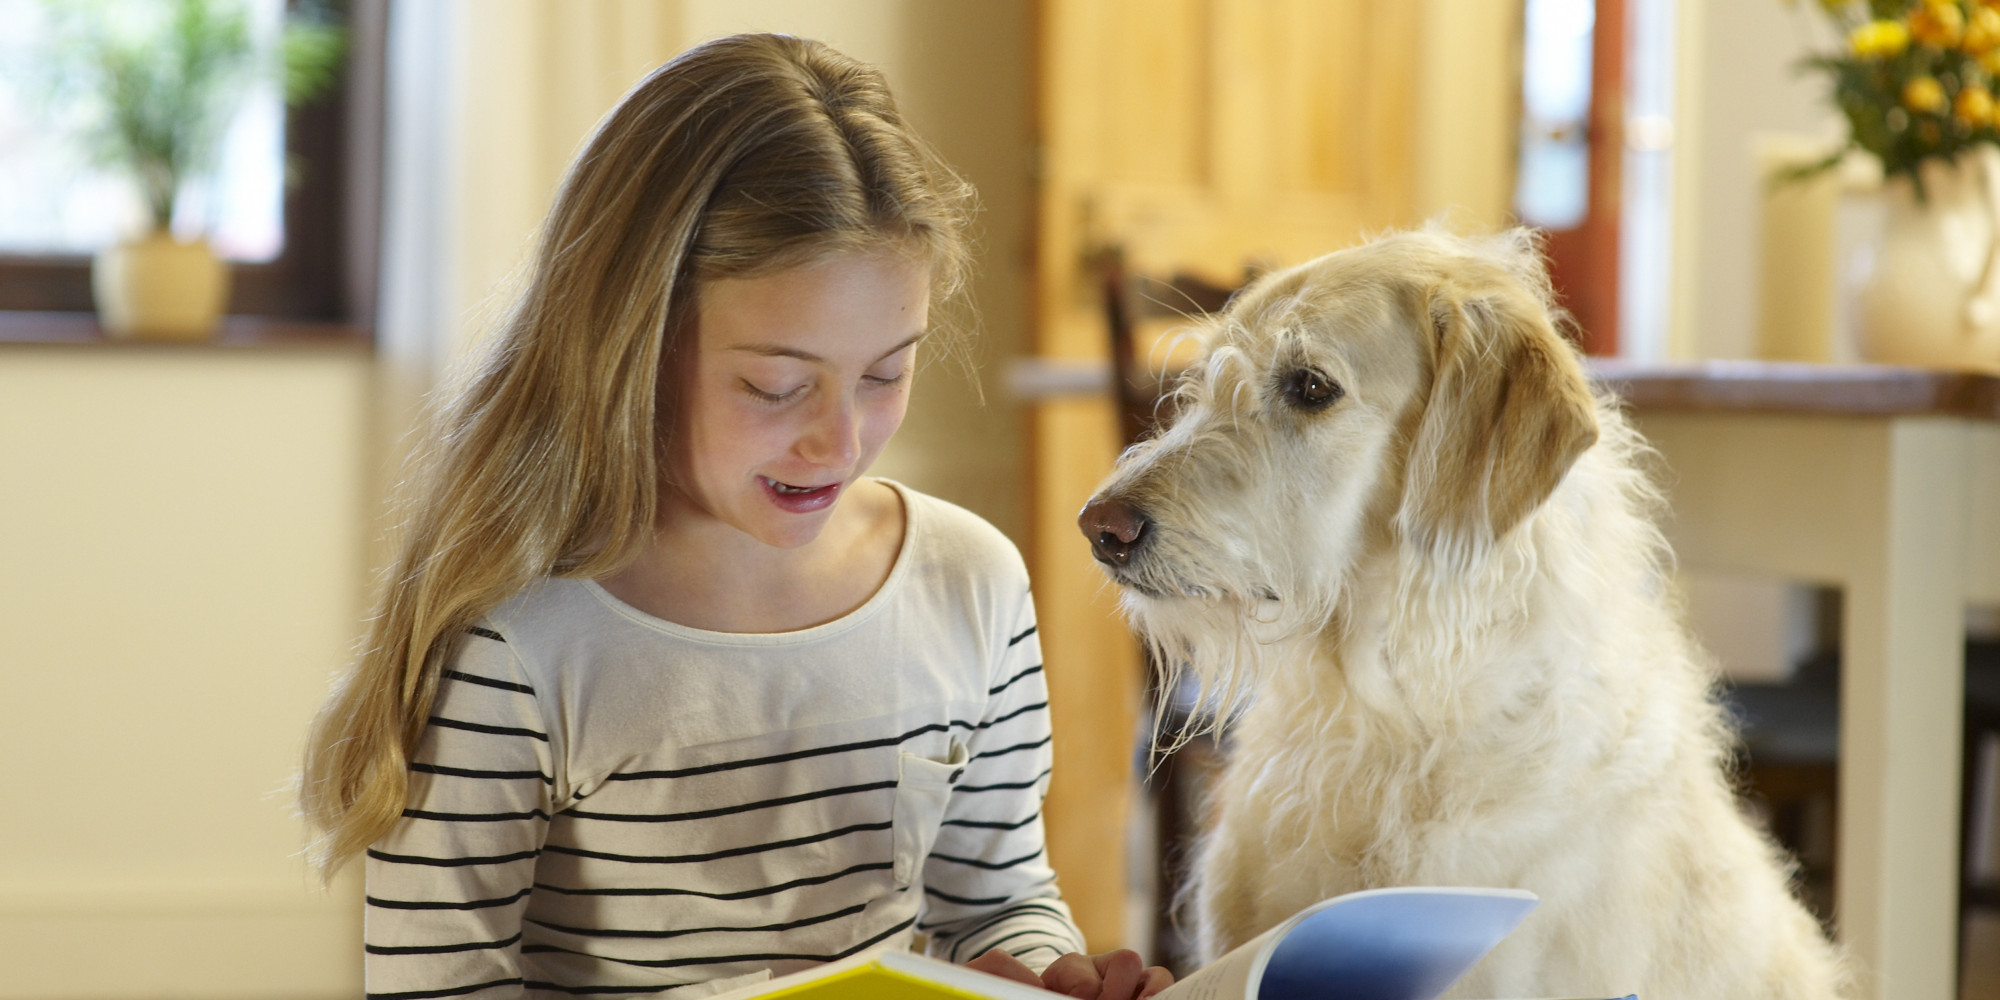 Struggling students read to therapy dogs find confidence in judgment